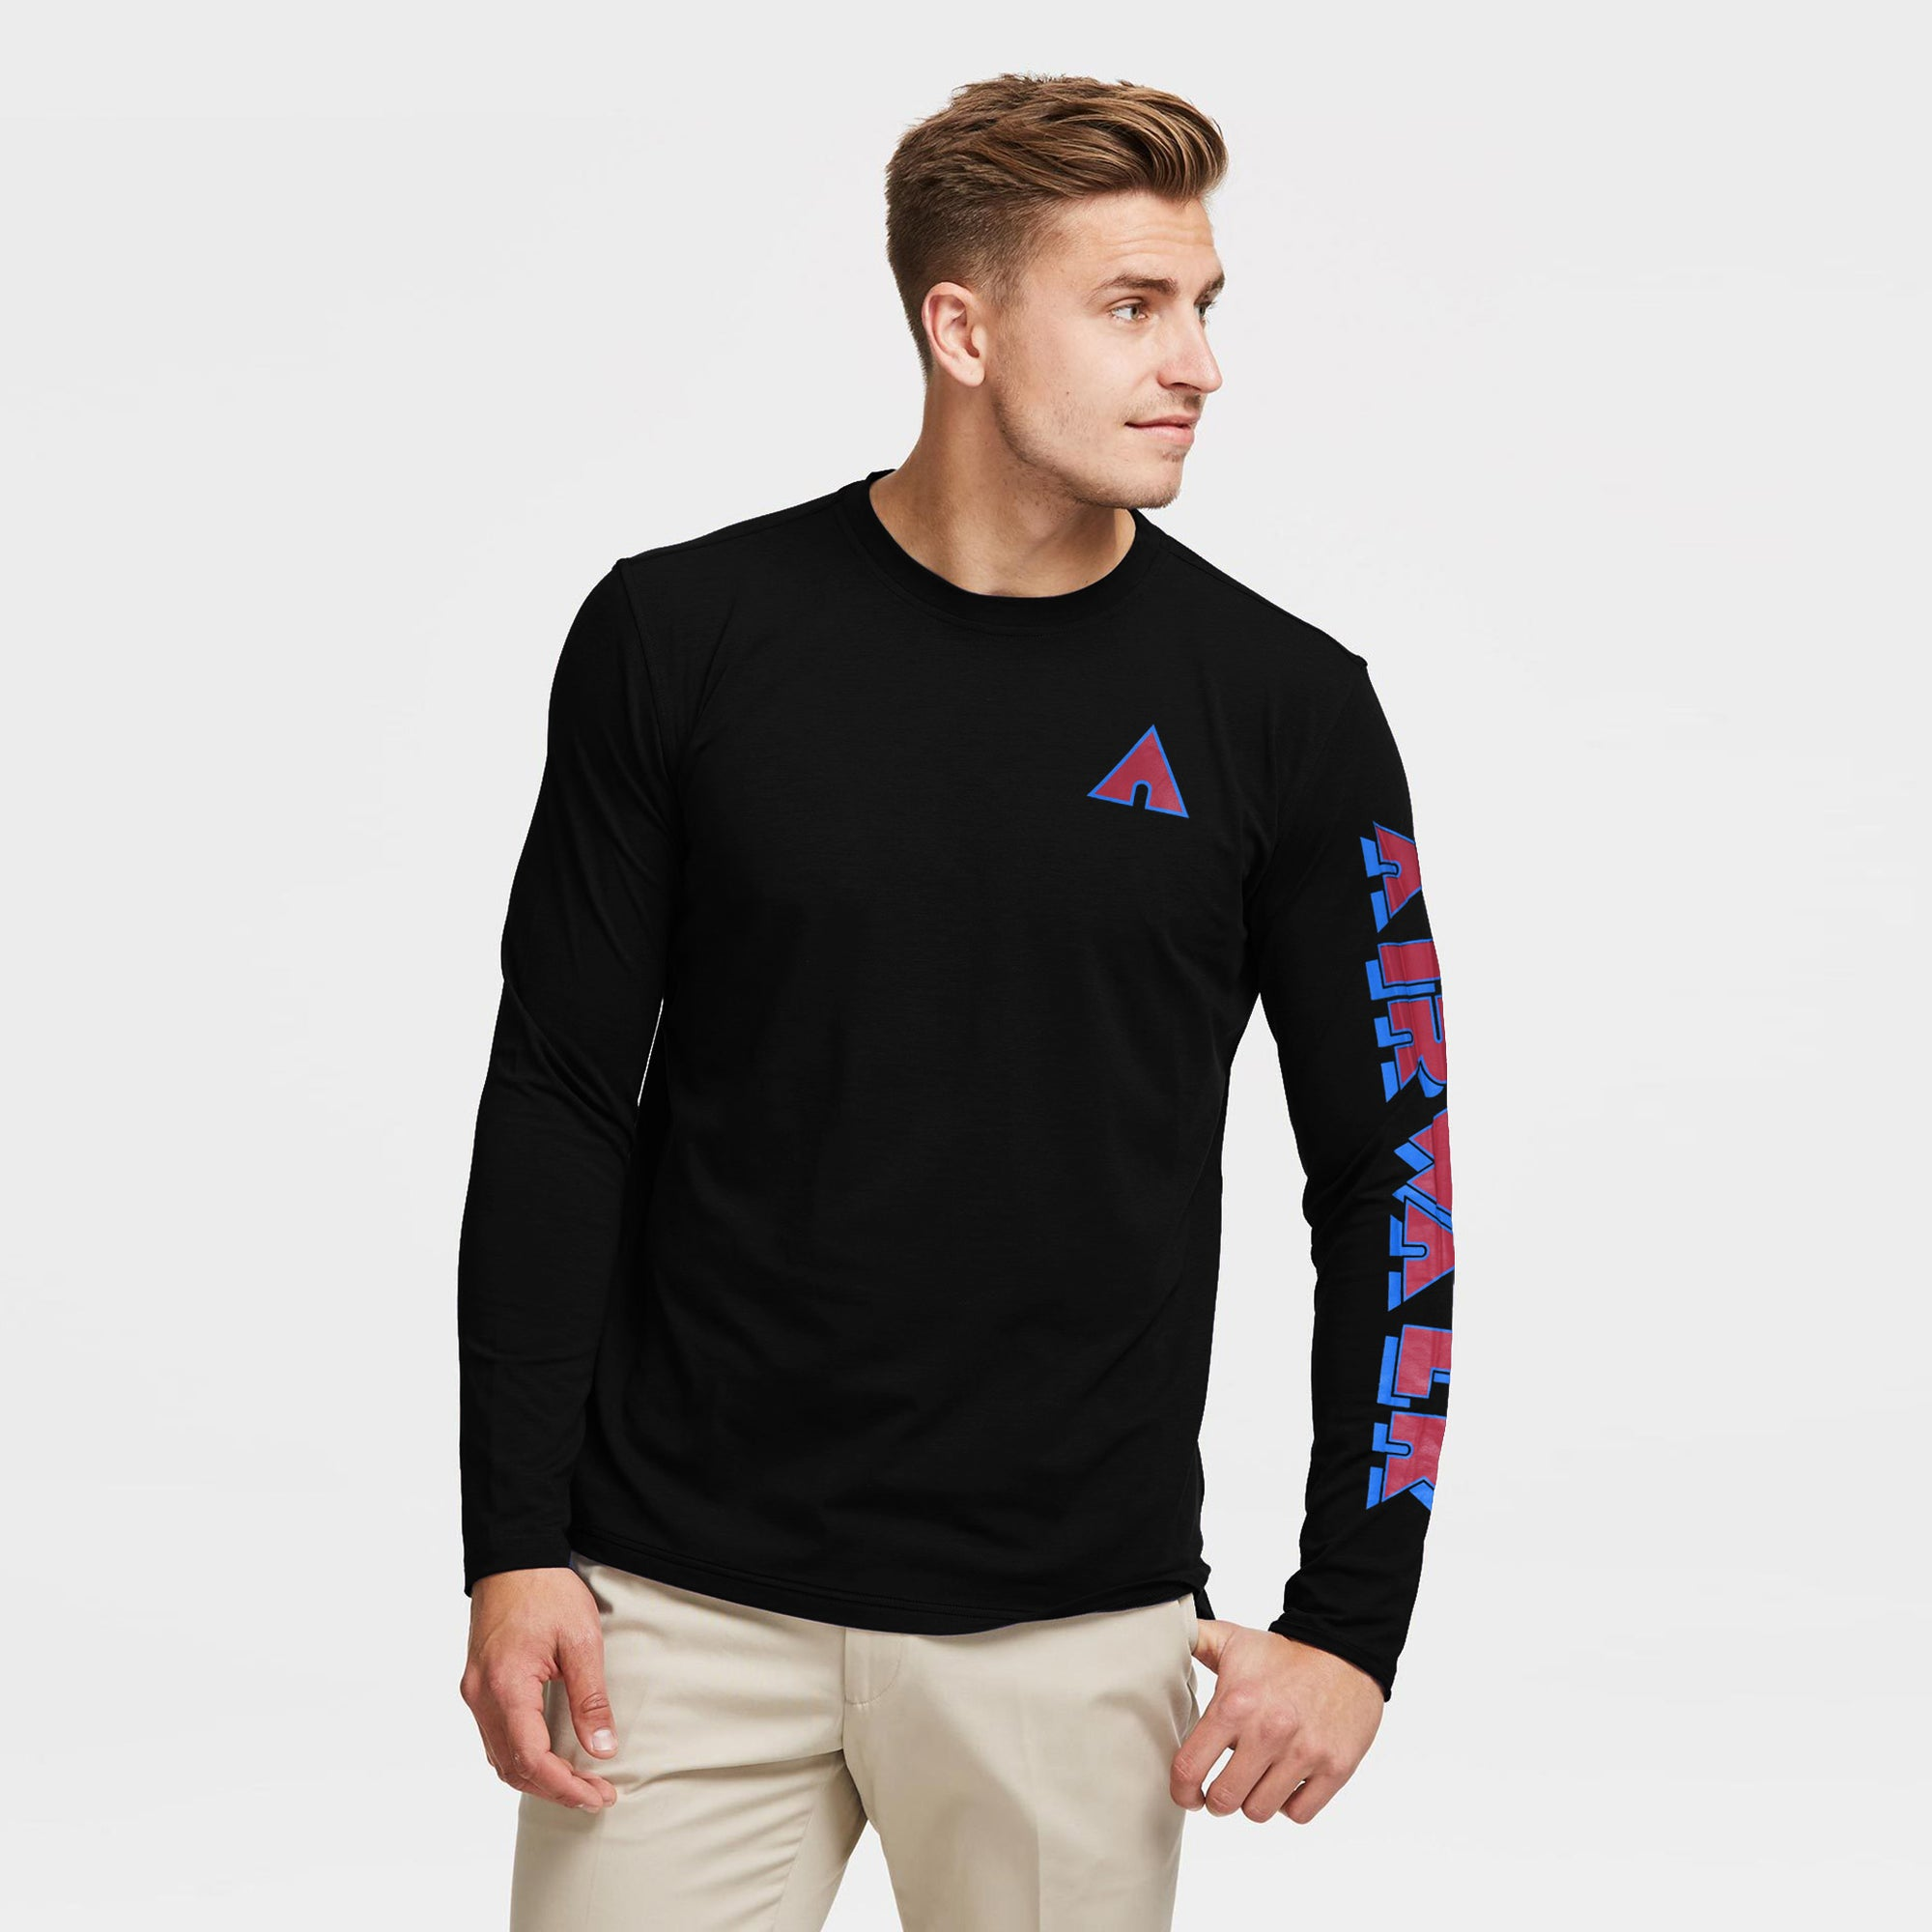 Air Walk Single Jersey Long Sleeve Tee Shirt For Men-Black-BE8891